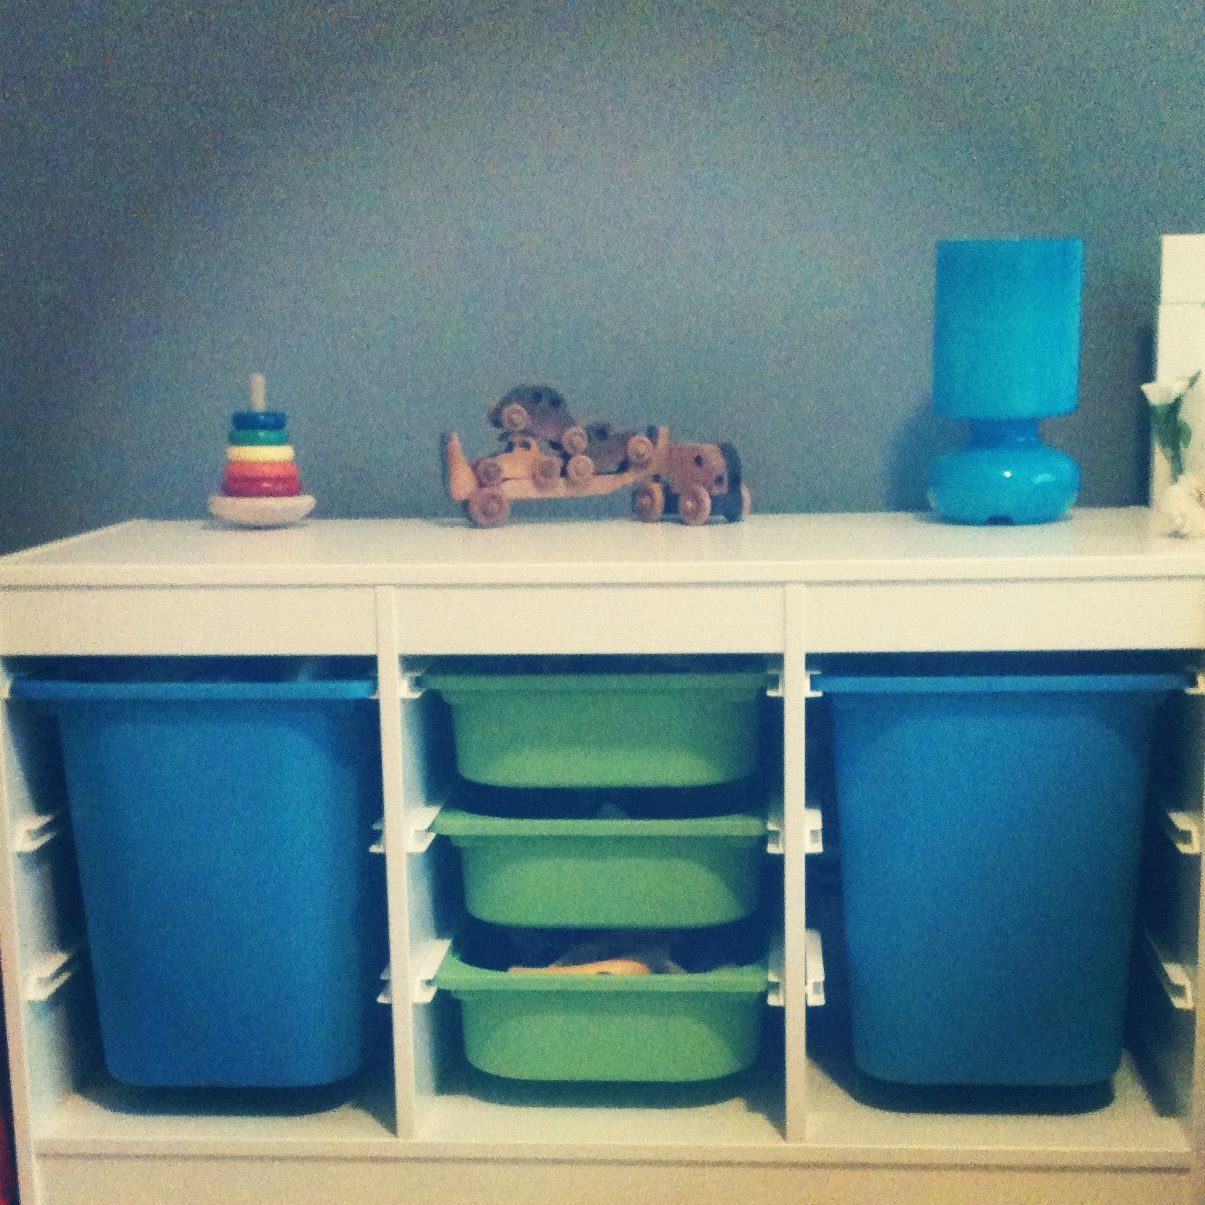 10 Genius Storage Ideas For Small Spaces: Ikea Storage Bins, Toddler Room, Toy Storage (With Images)